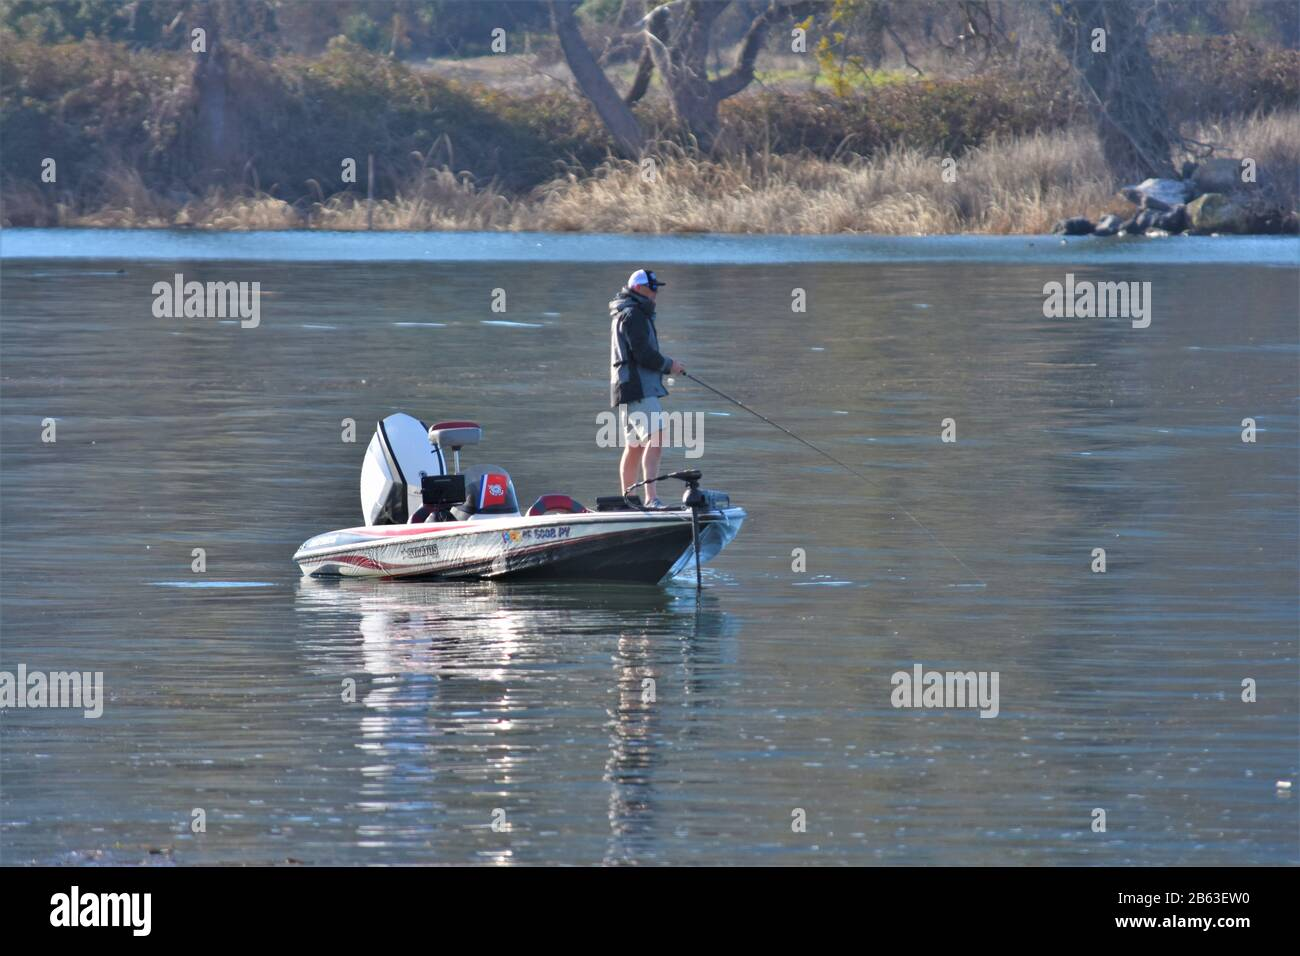 Men In Bass Boats Fishing For Contest For Money For The Most Catch On Clear Lake California As A Hobby And A Job Making Cash Stock Photo Alamy